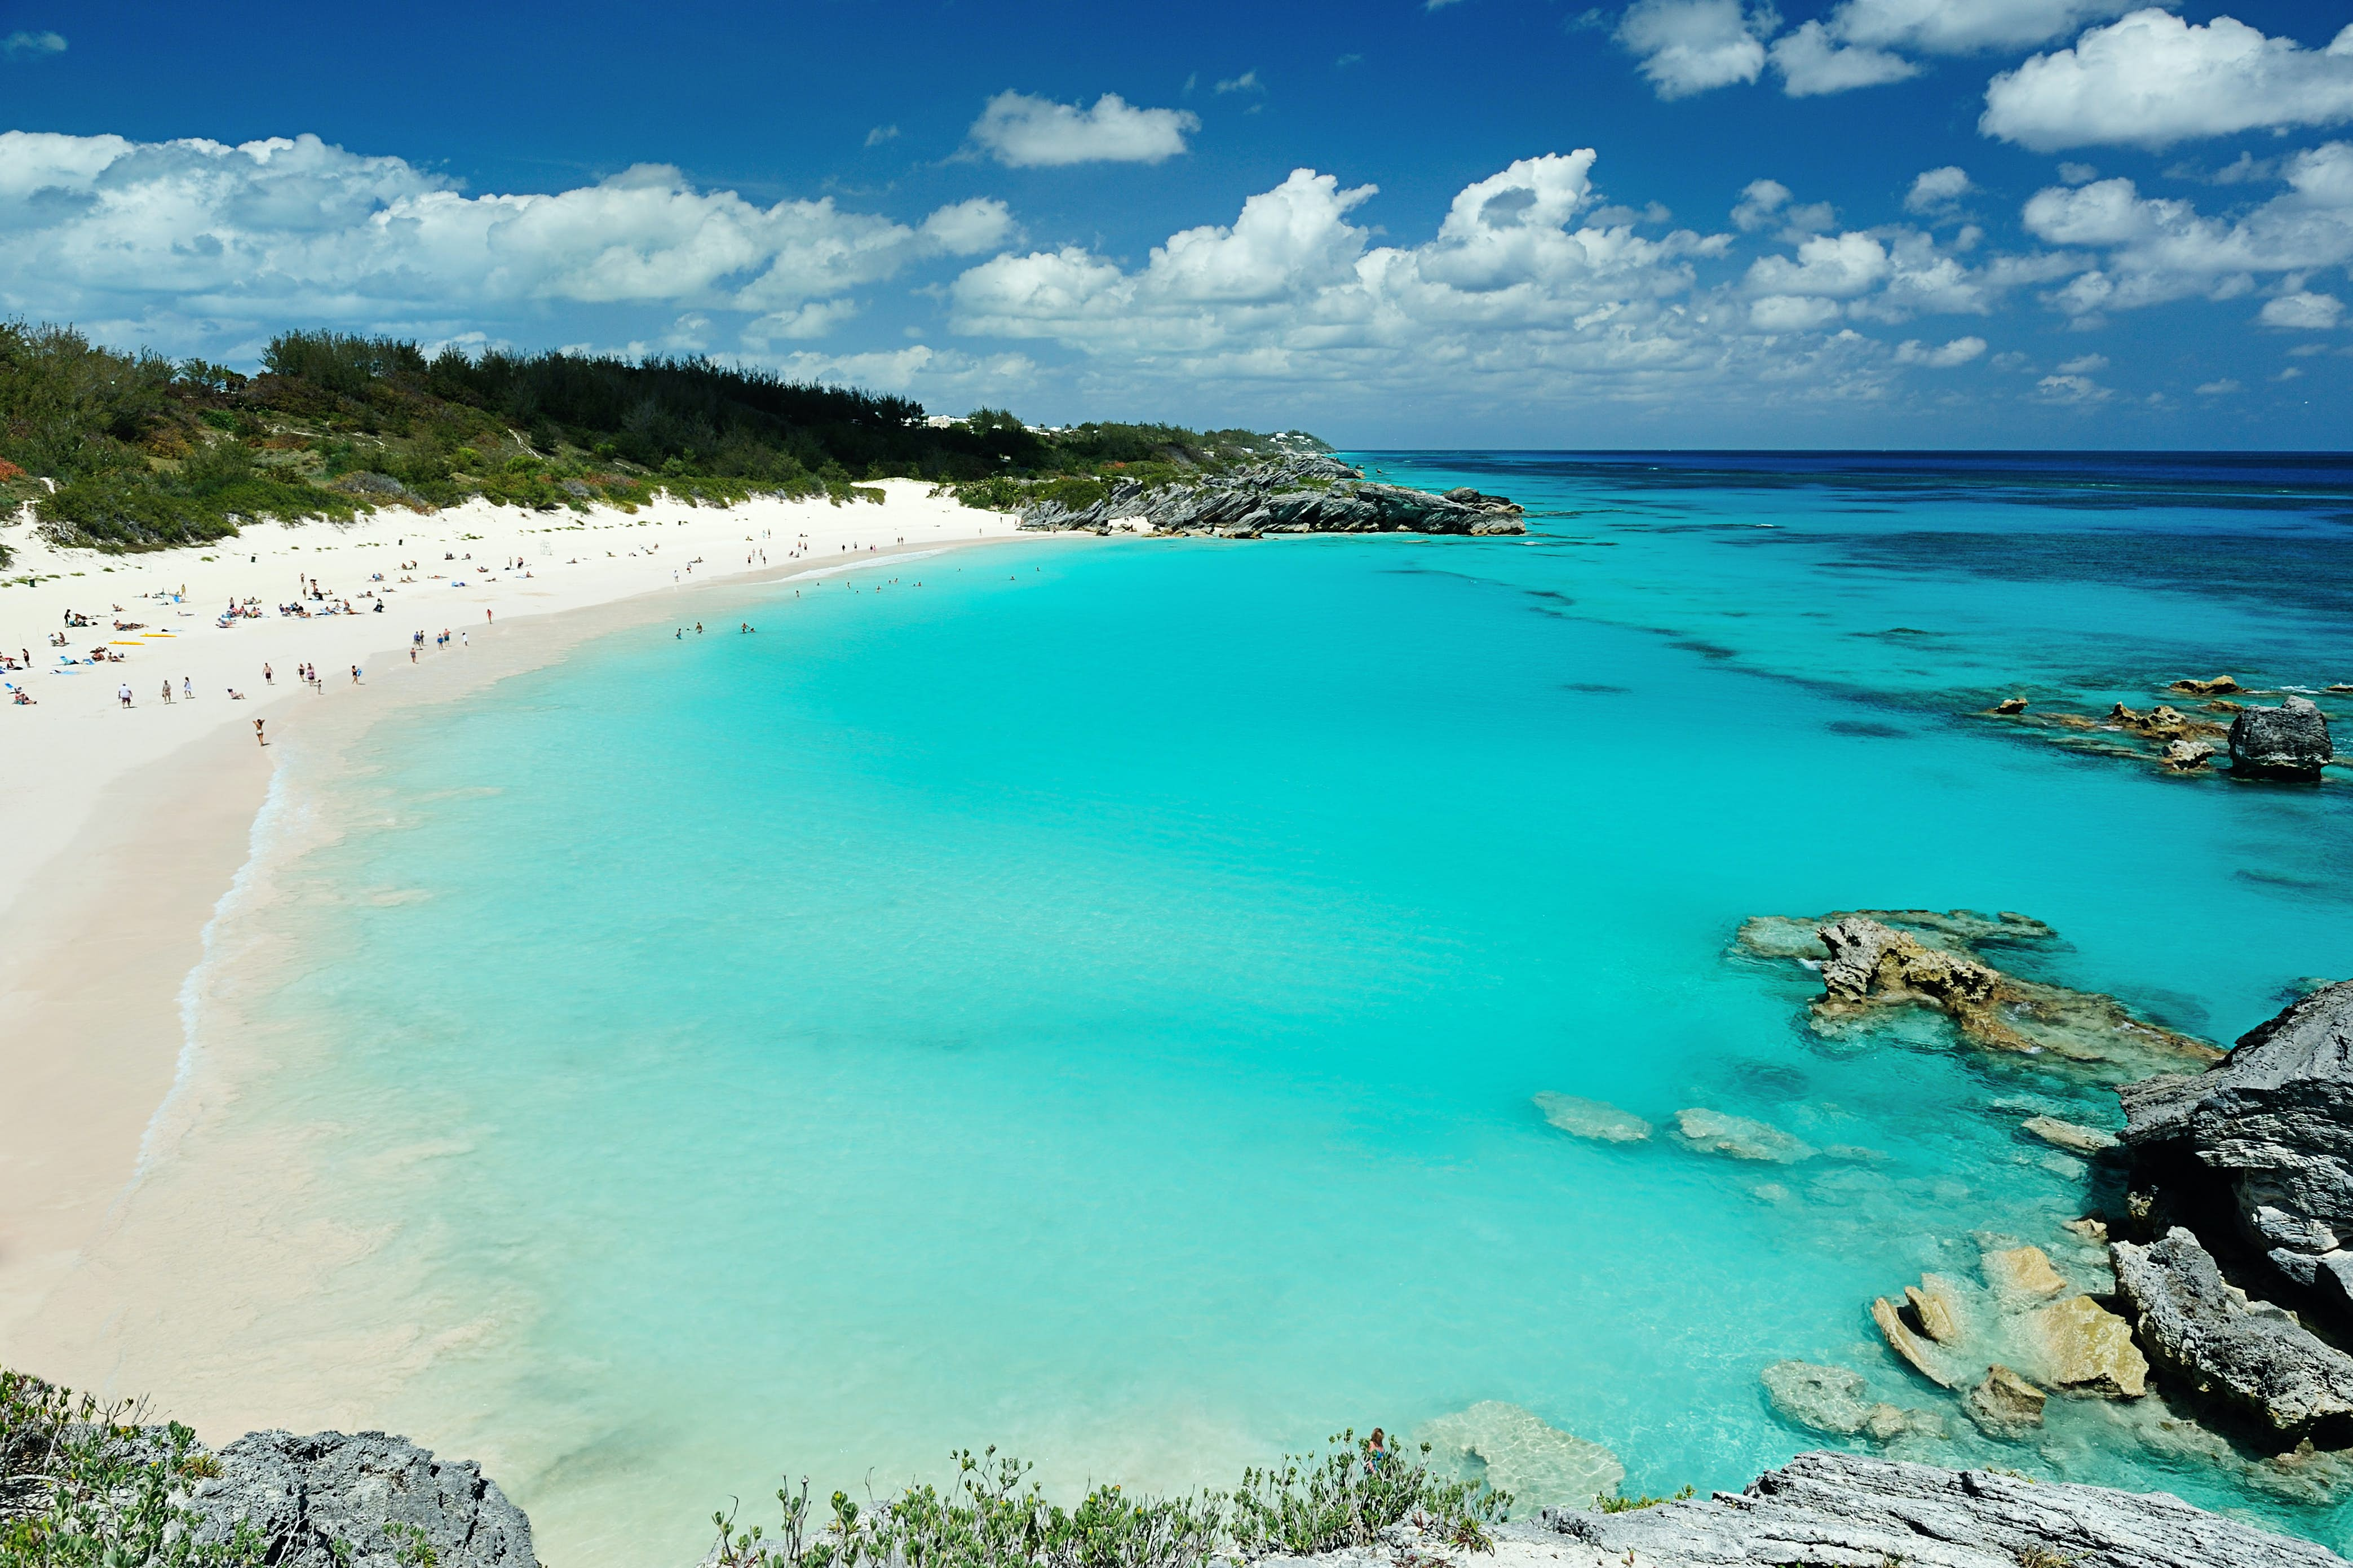 One of Bermuda's many stunning pink sand beaches © PixieMe / Shutterstock